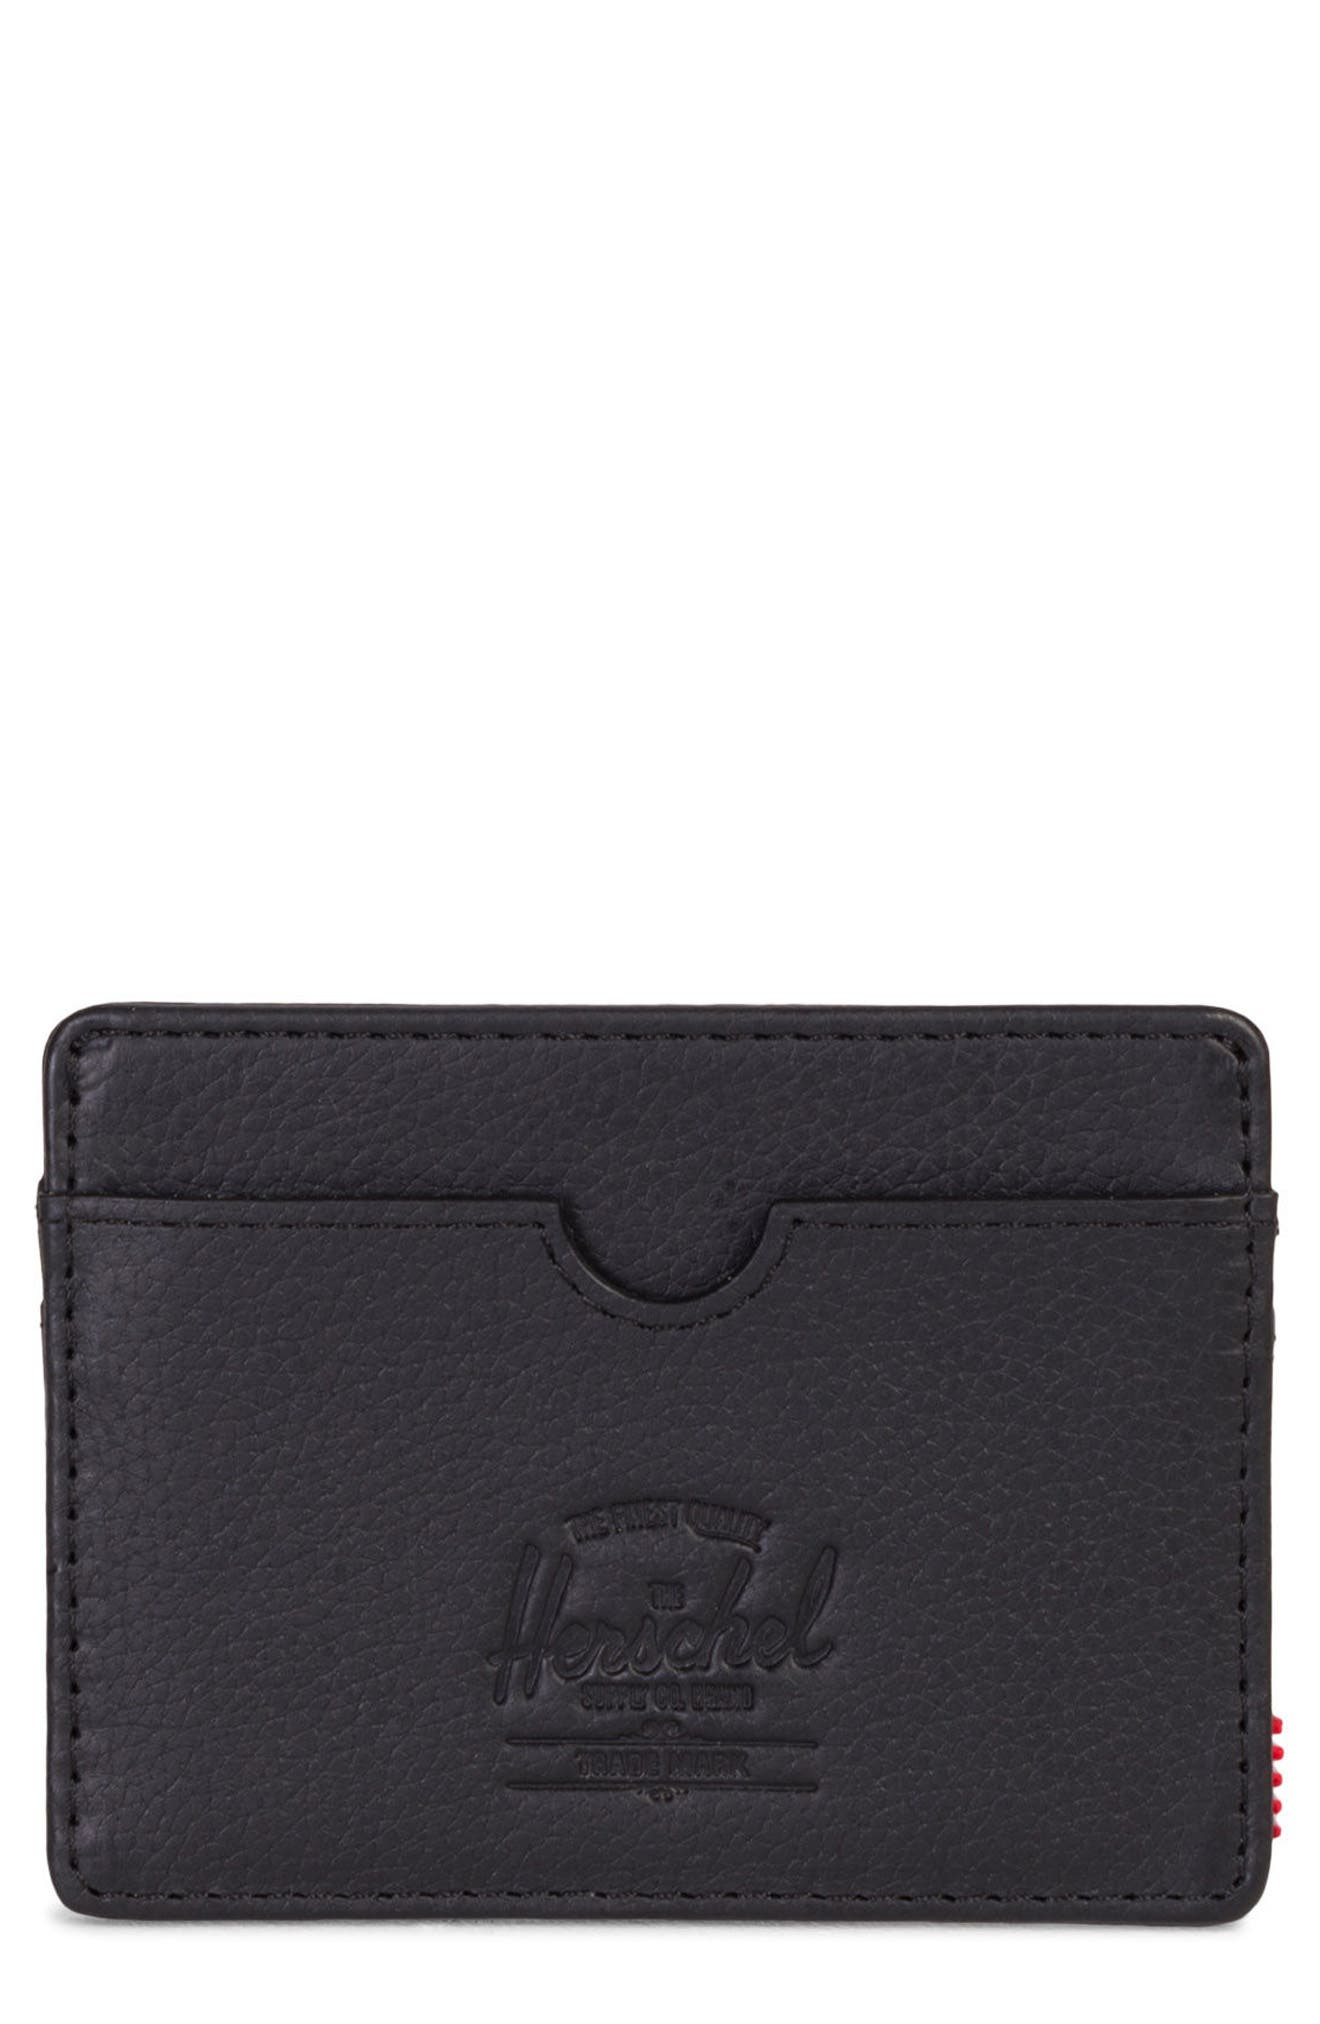 Charlie Leather Card Case,                             Main thumbnail 1, color,                             005